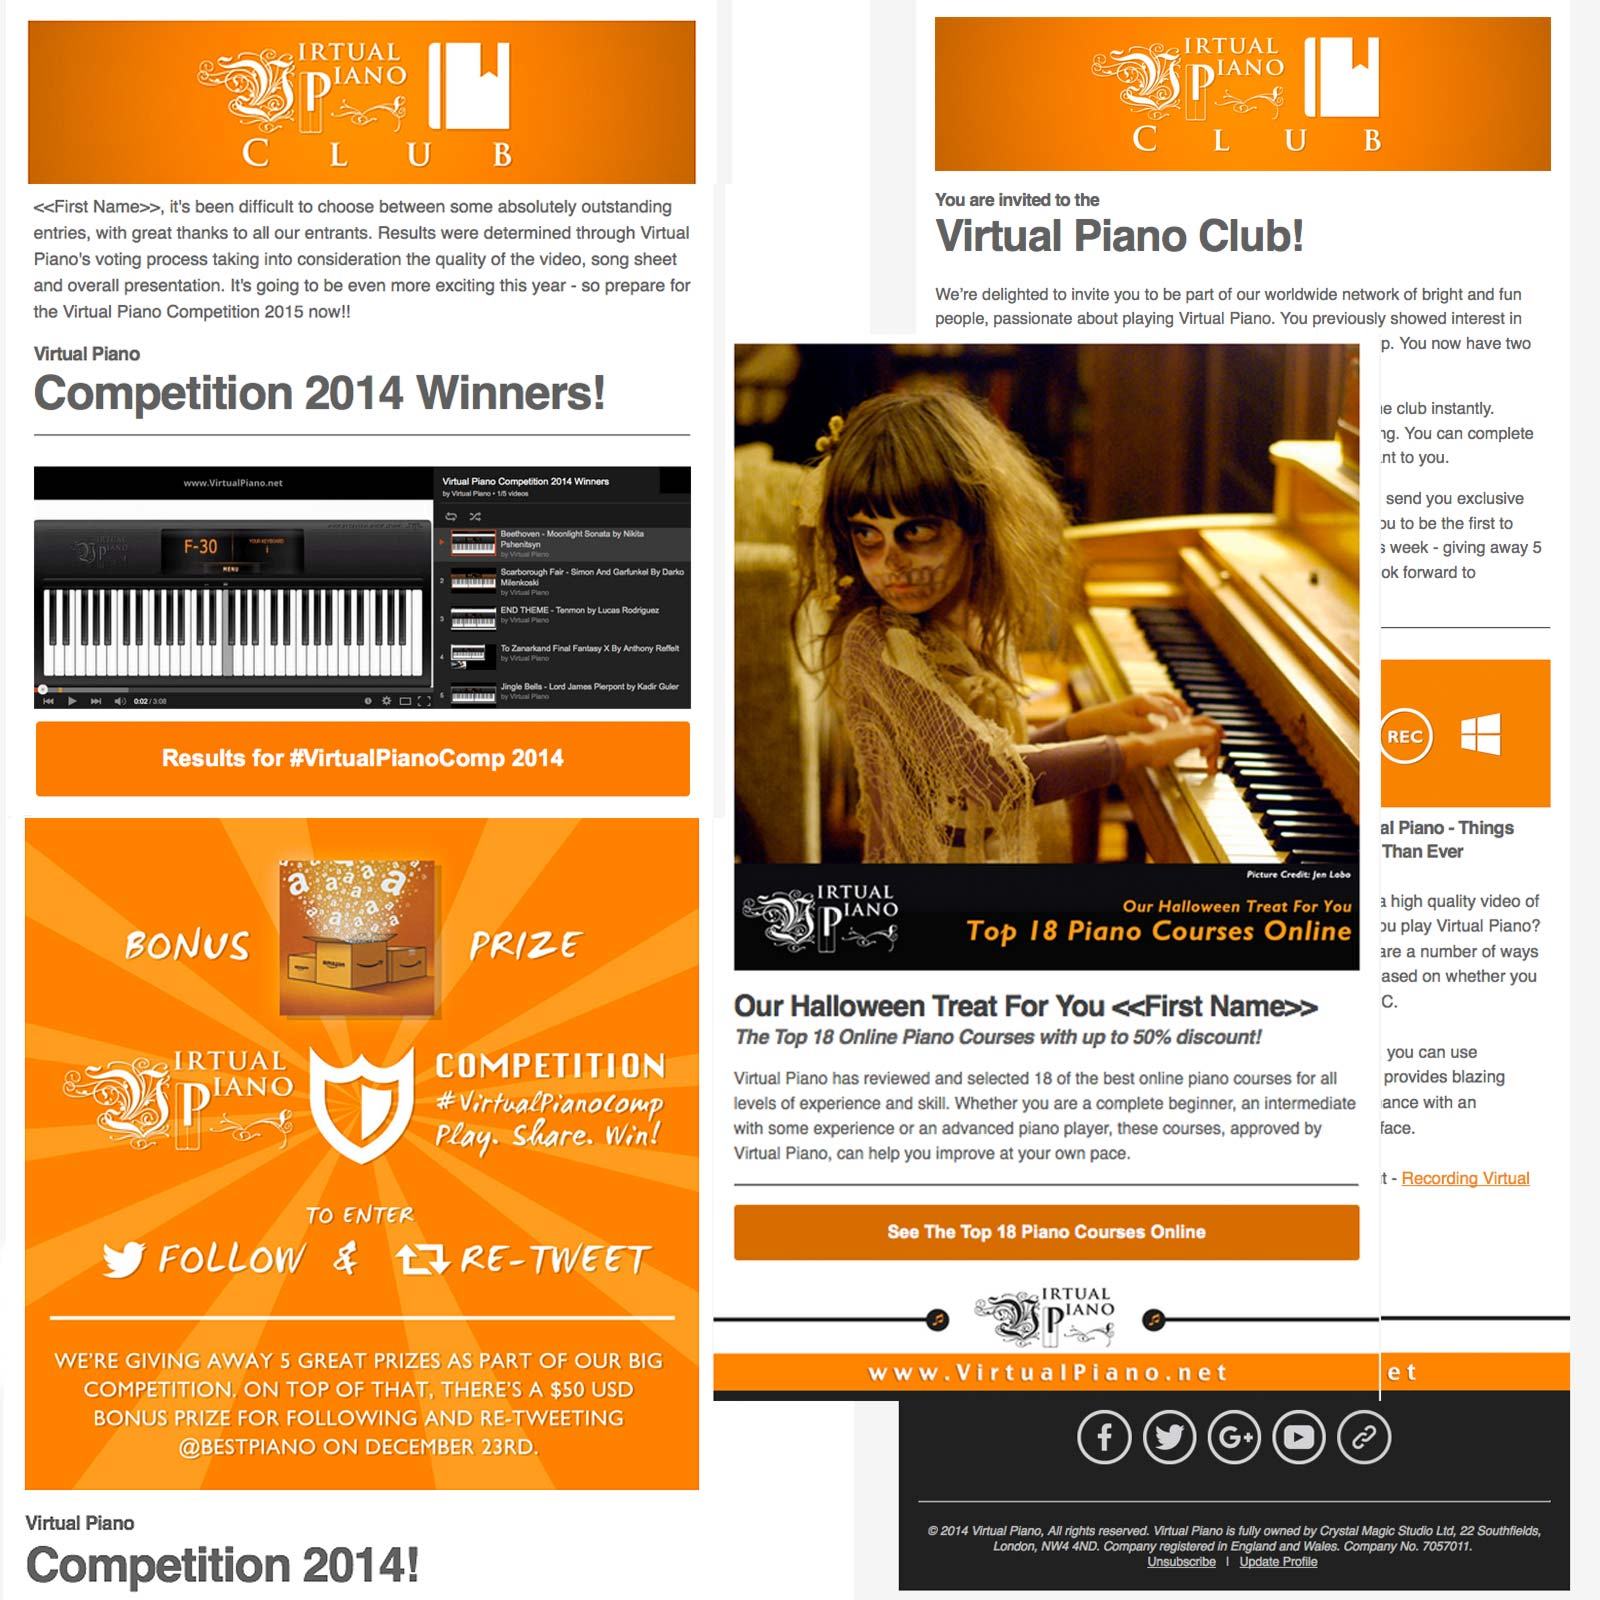 Email Newsletter Campaigns for online piano app, Virtual